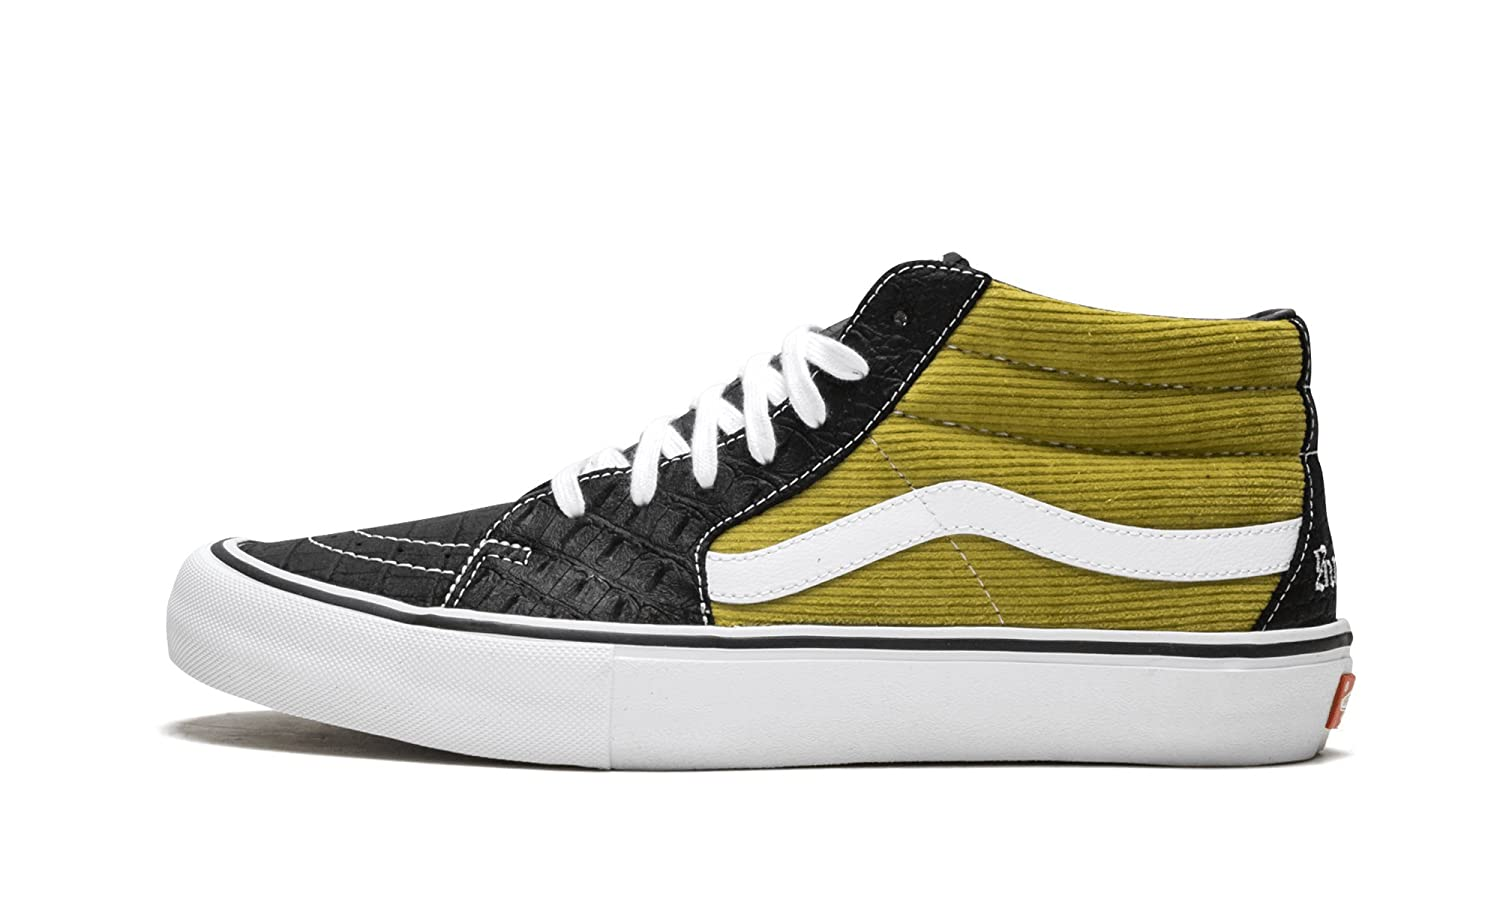 8a2d6931cb Amazon.com  Vans Sk8-Mid Pro (Supreme)  Shoes